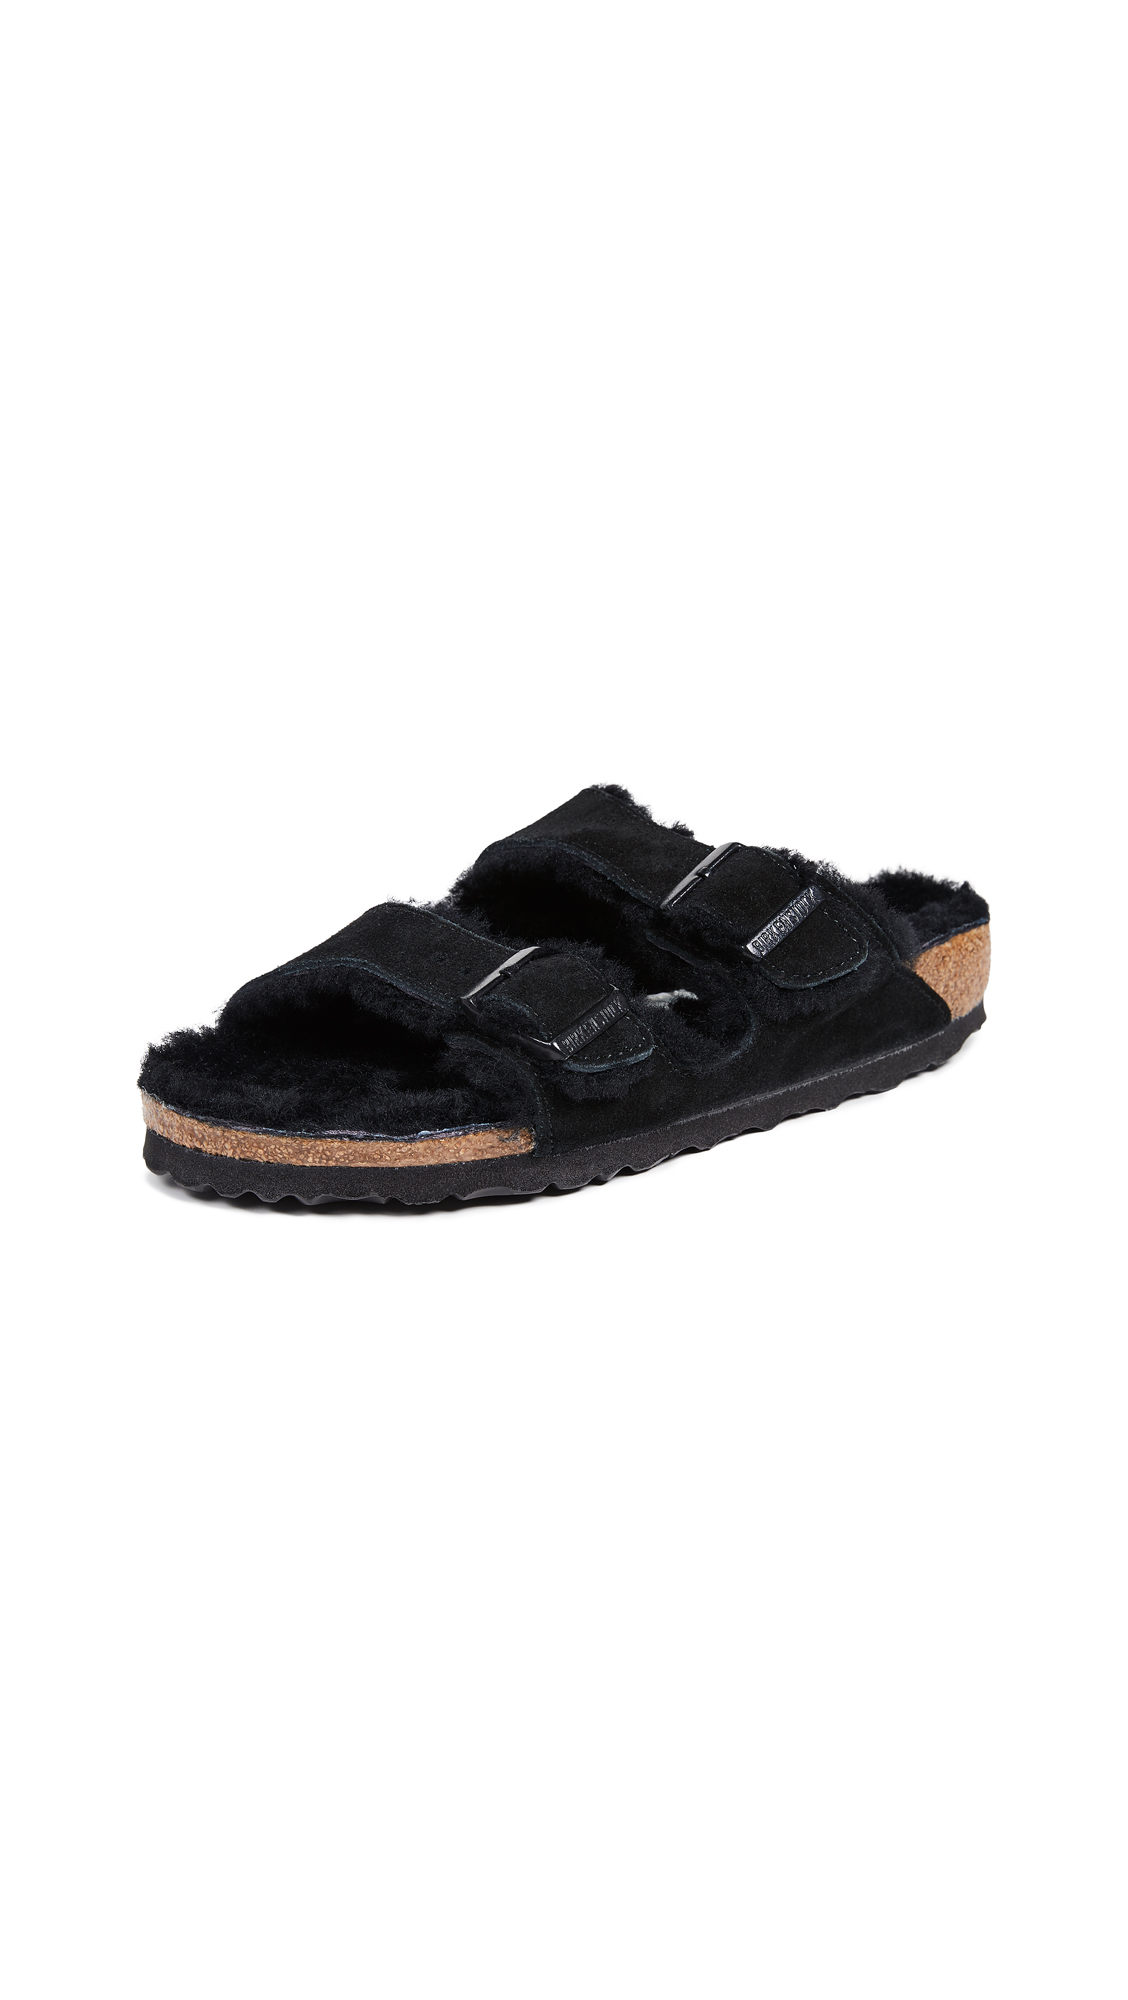 Birkenstock Arizona Soft Footbed Suede Leather Shearling Black Narrow Fitting Sandals